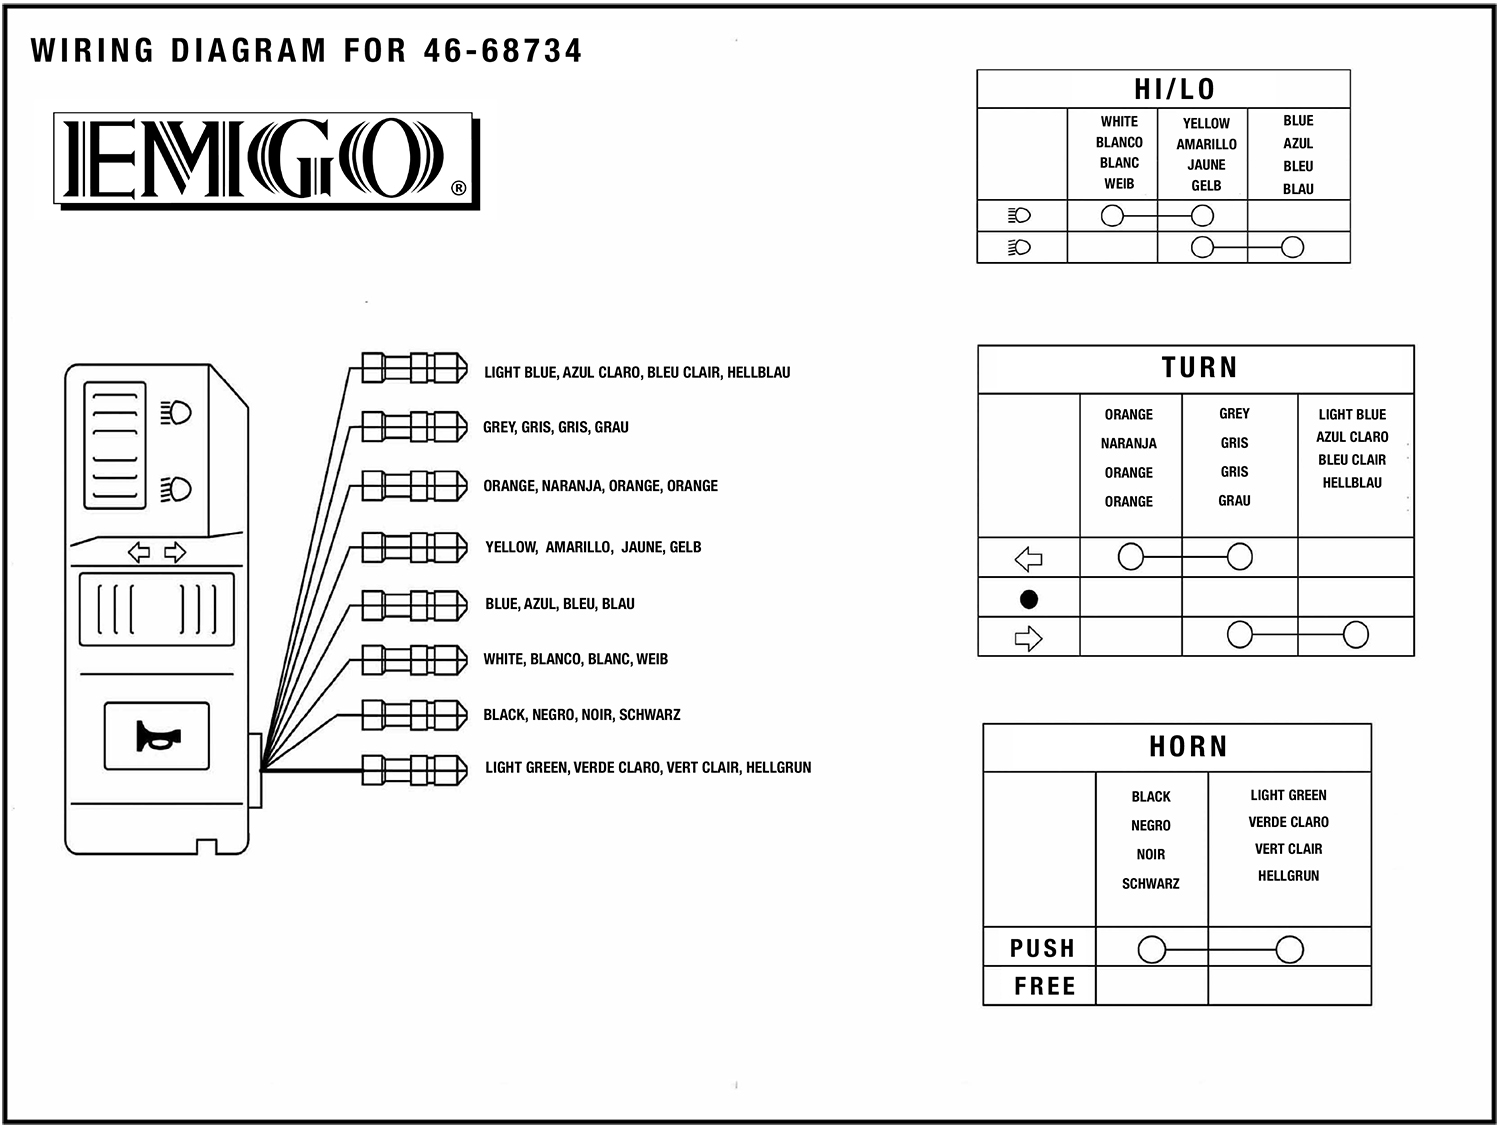 Wiring Diagram Gl1800 Schematic Diagrams Cruise Goldwing 2003trunk Trusted For Trailer 82 Air Ride